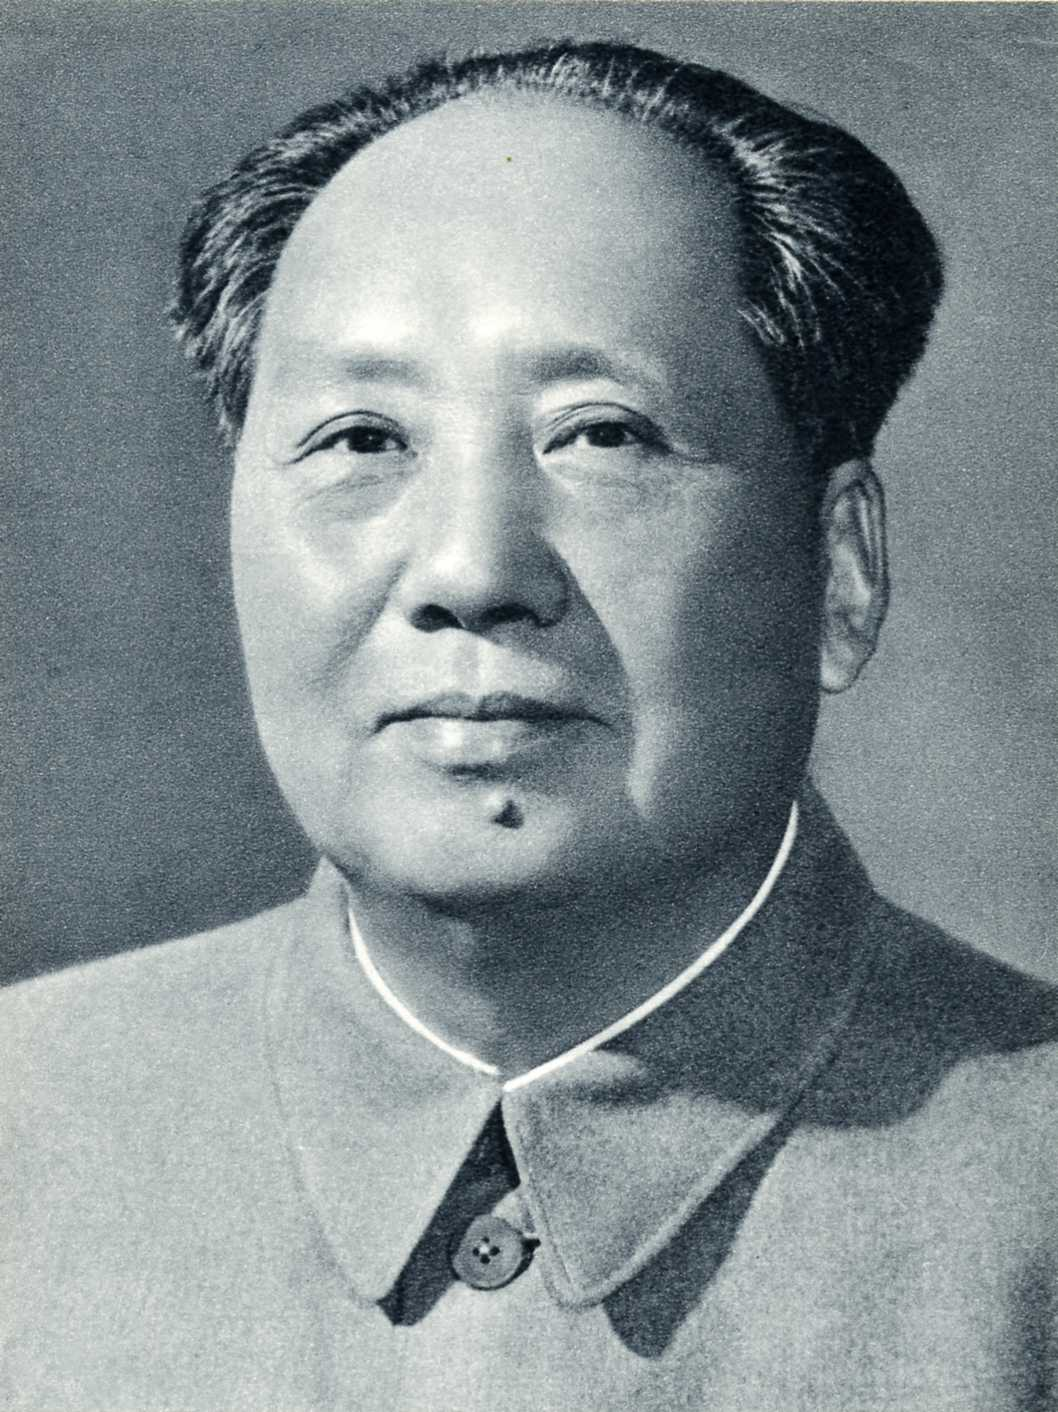 mao zedong alchetron the social encyclopedia mao zedong historical responsibility yasukuni and mao zedong